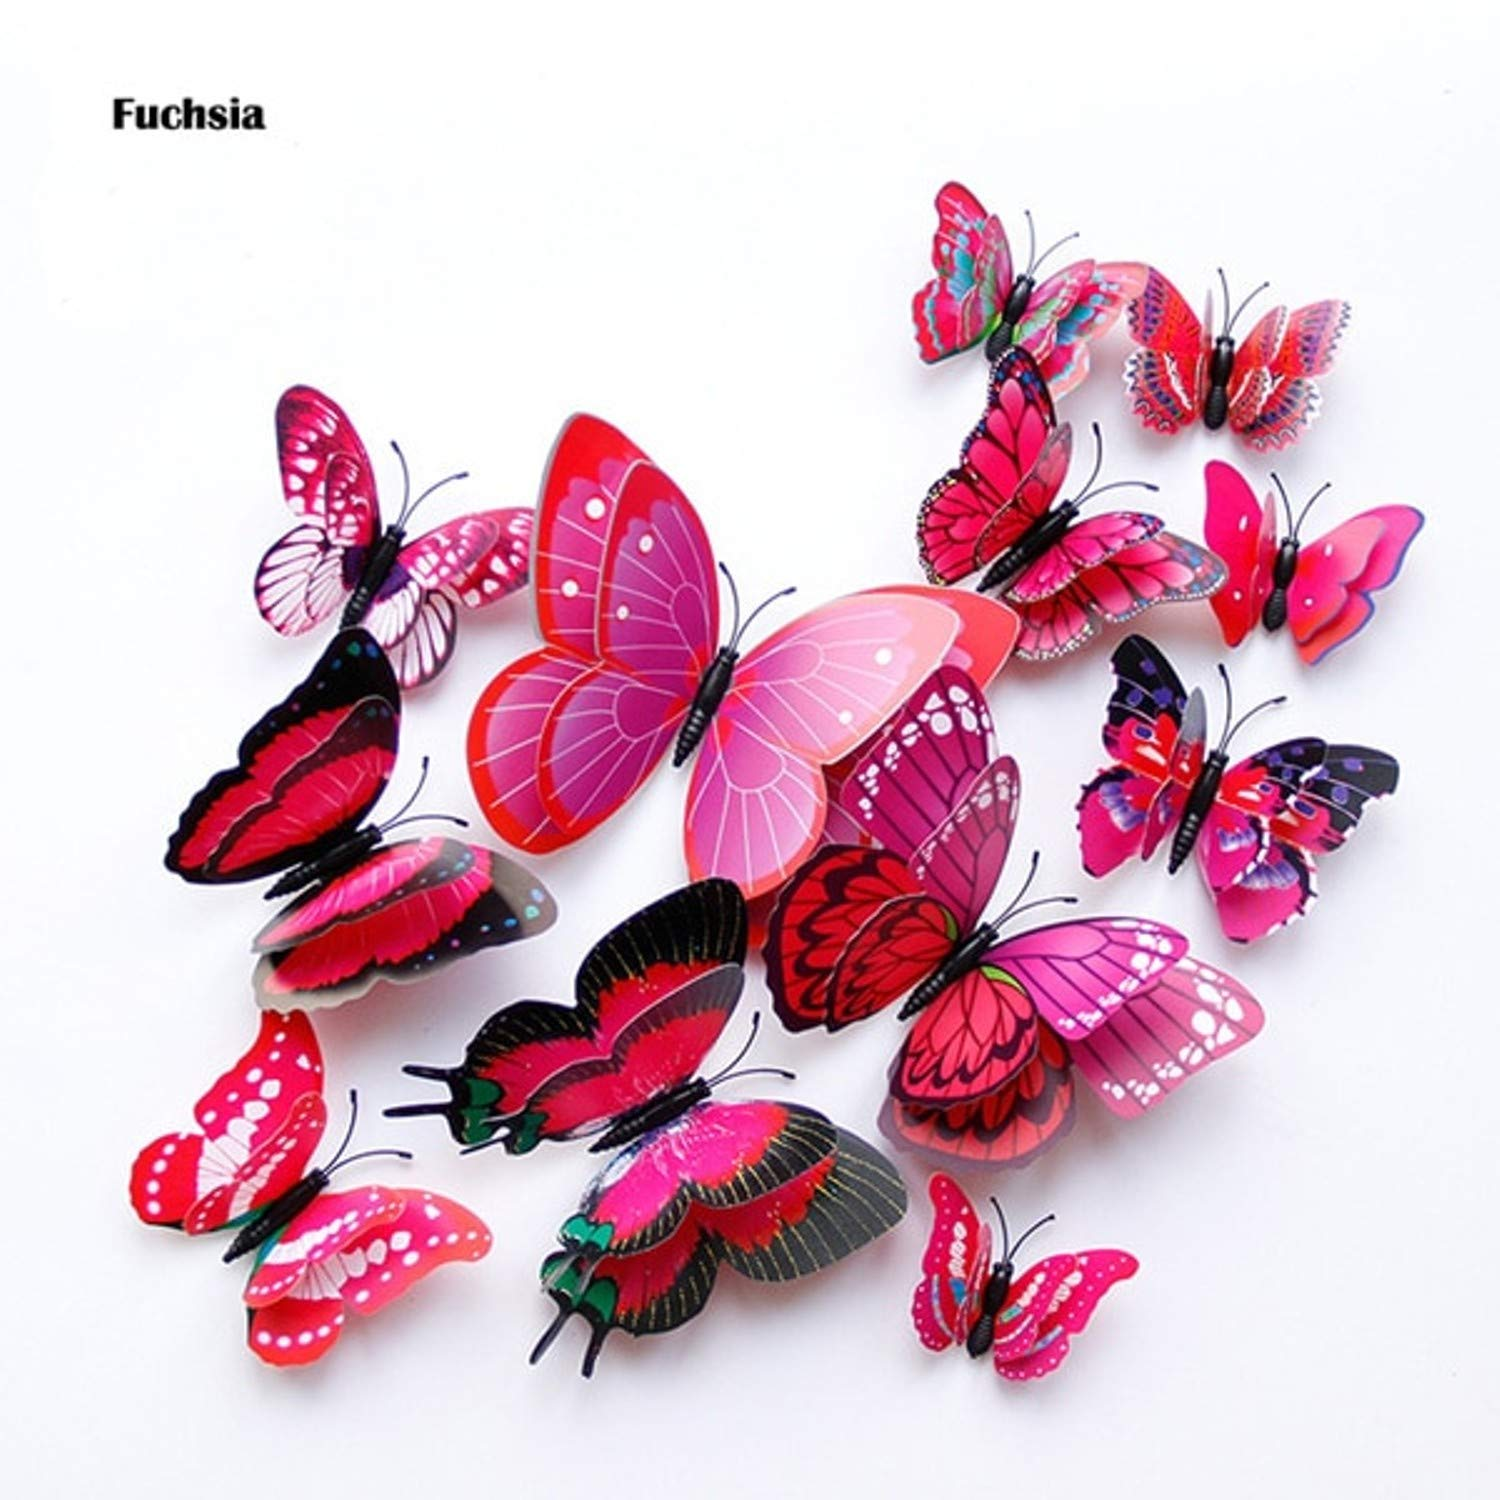 Amazon.com: Batop 12Pcs Double Layer 3D Butterfly Wall Sticker - On The Wall - Home Decor Butterflies for Decoration - Magnet Fridge Stickers (Fuchsia): ...